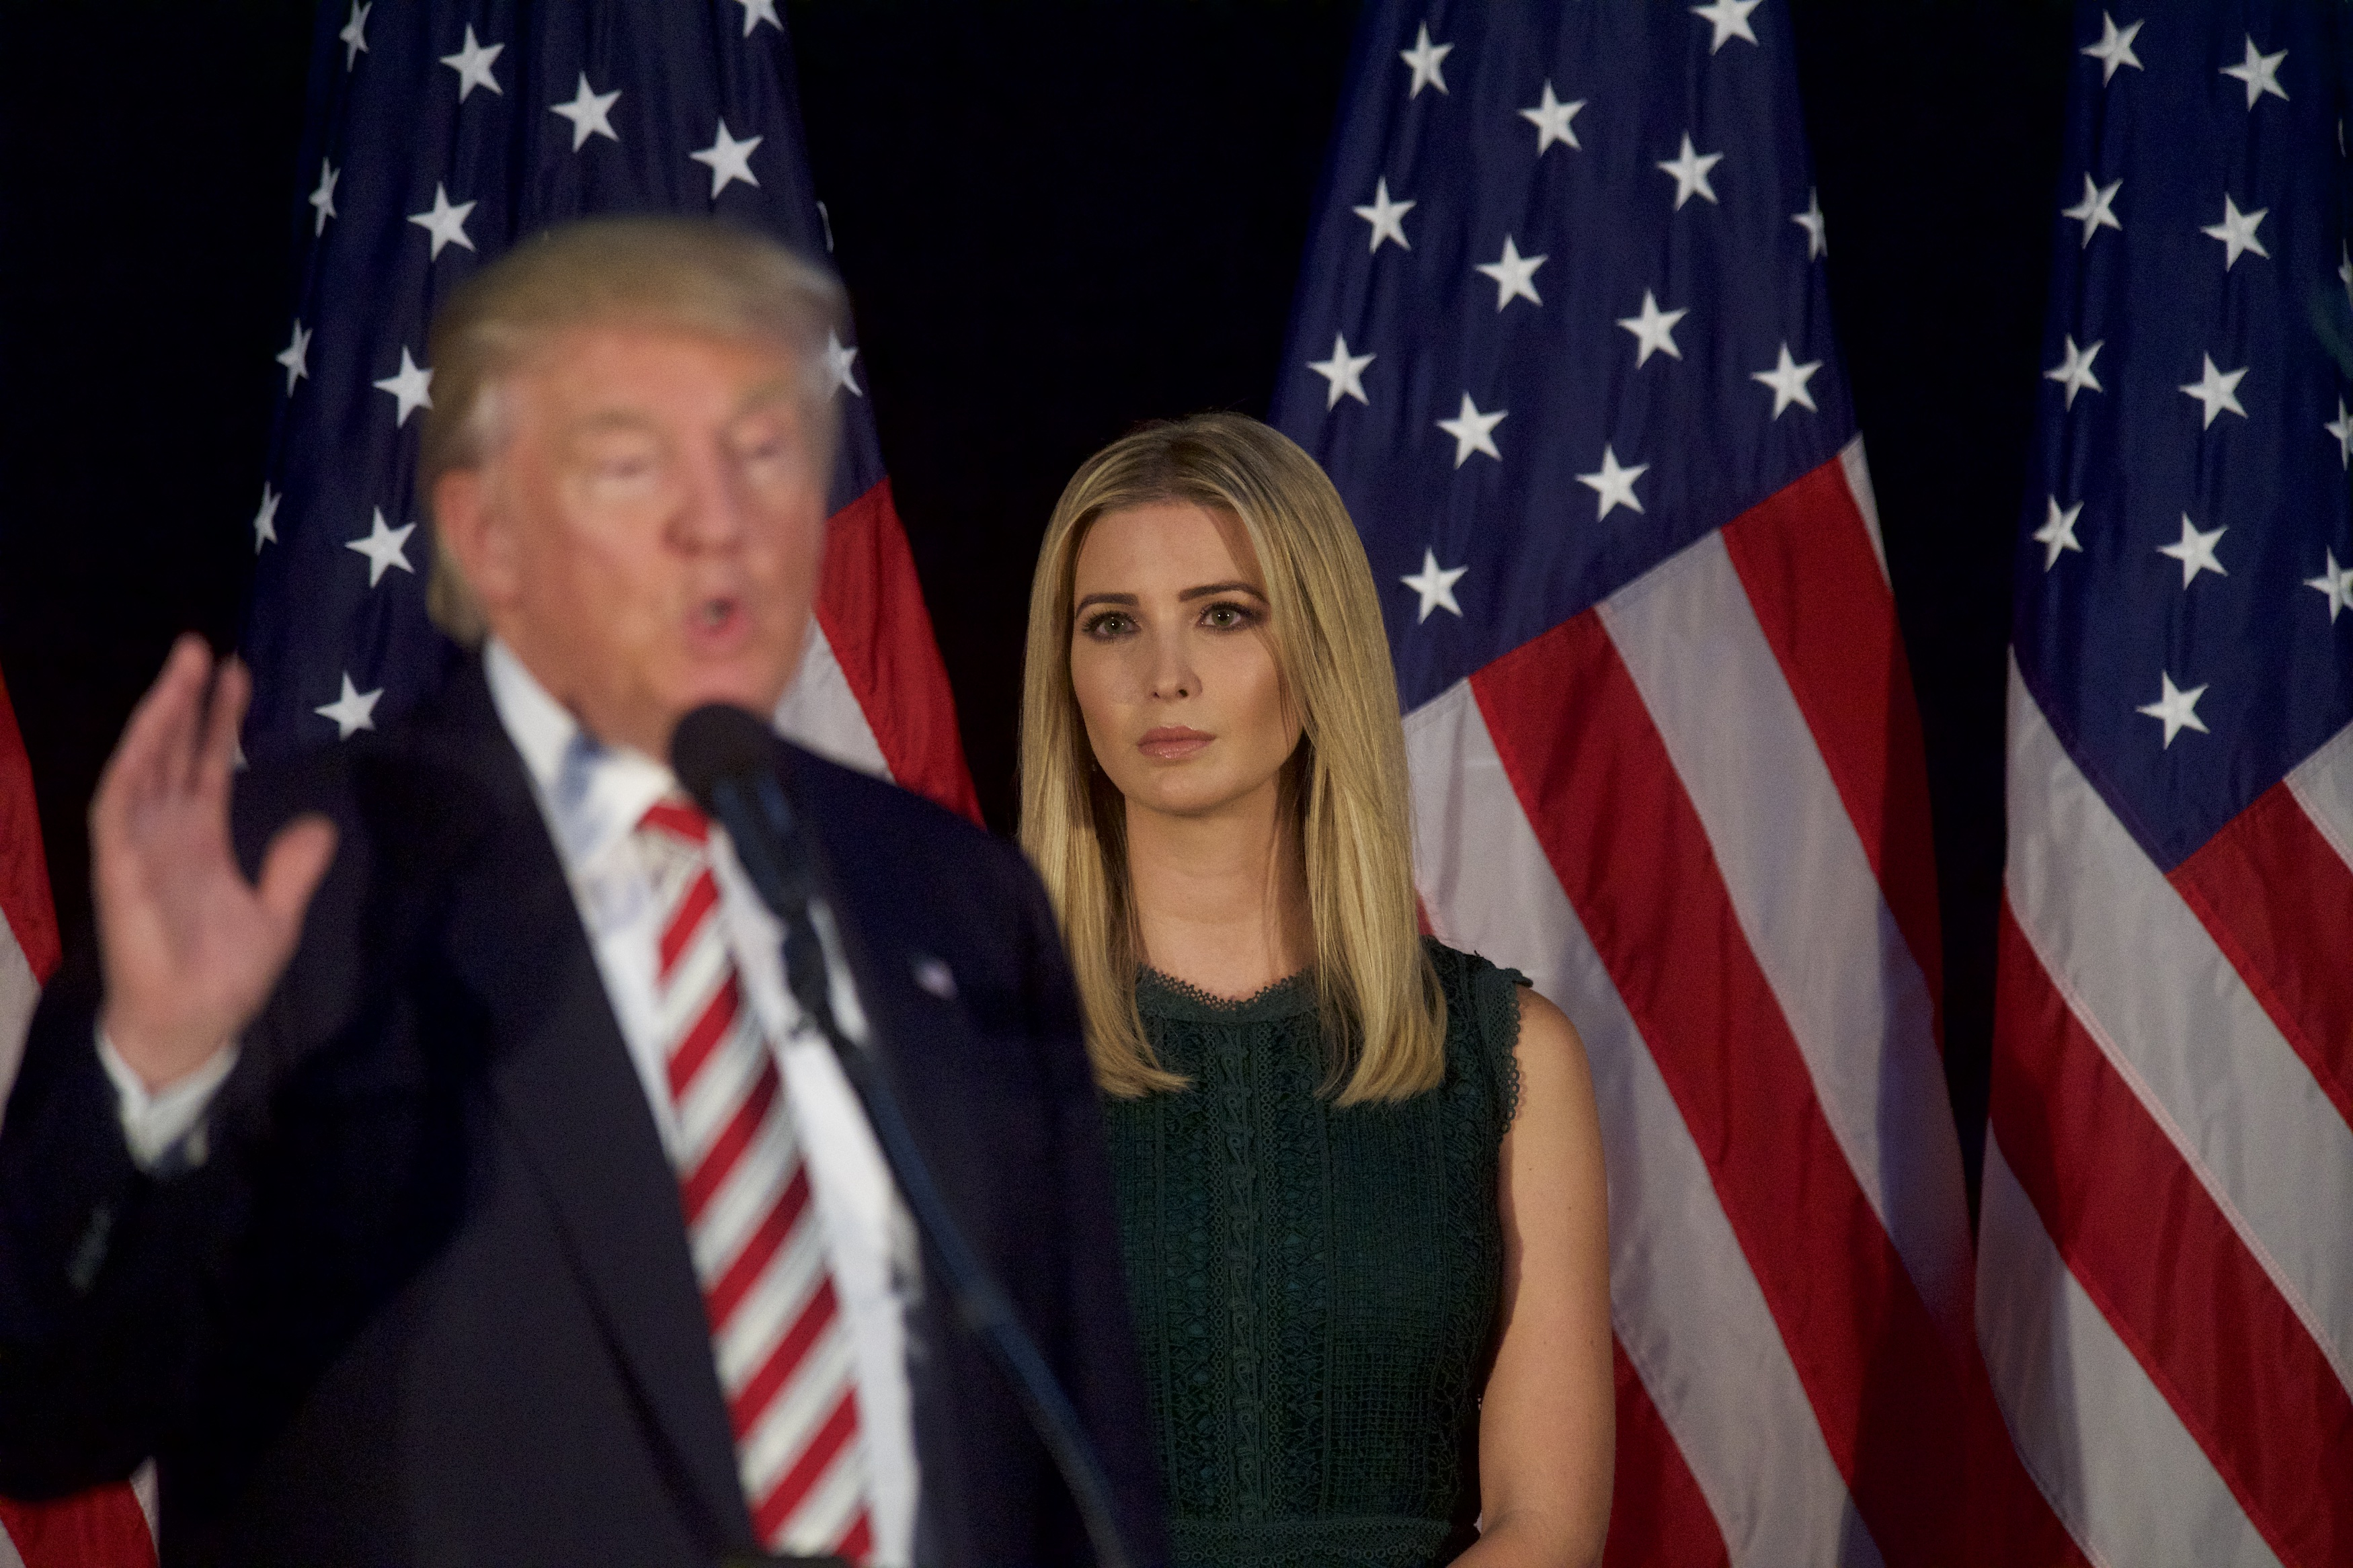 Ivanka Trump looks on as her her father, Republican presidential hopeful Donald J. Trump, speaks during a campaign event at the Aston Township Community Center in Aston, Pa., on Sept.13, 2016.